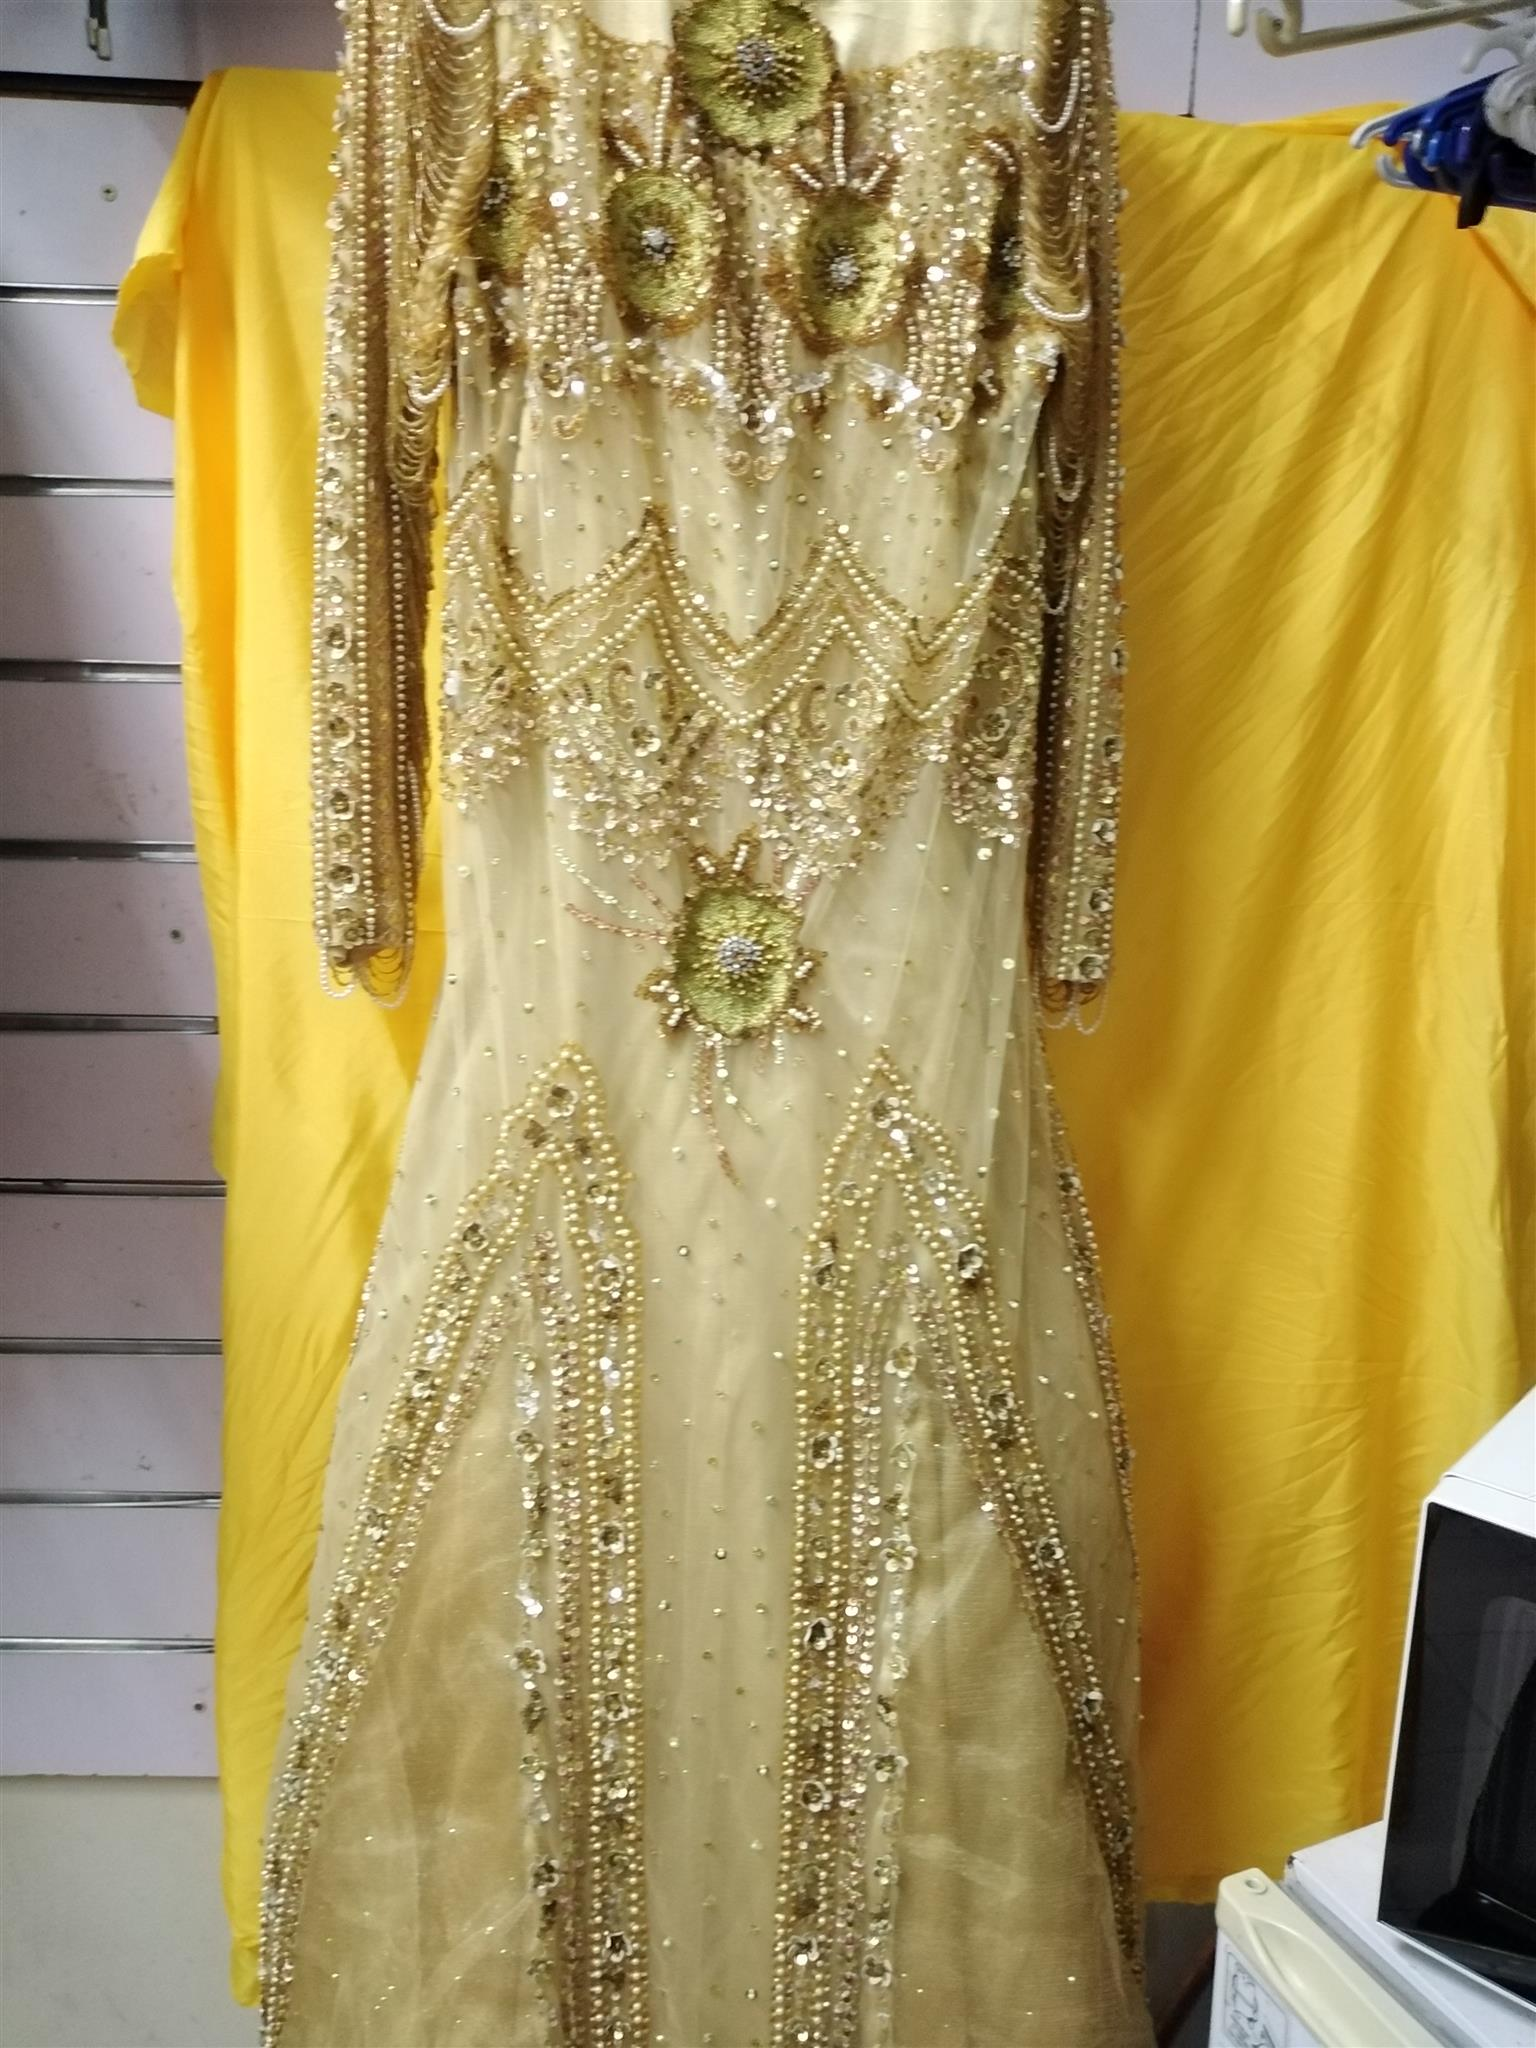 GOLD BEADED WEDDING GOWN